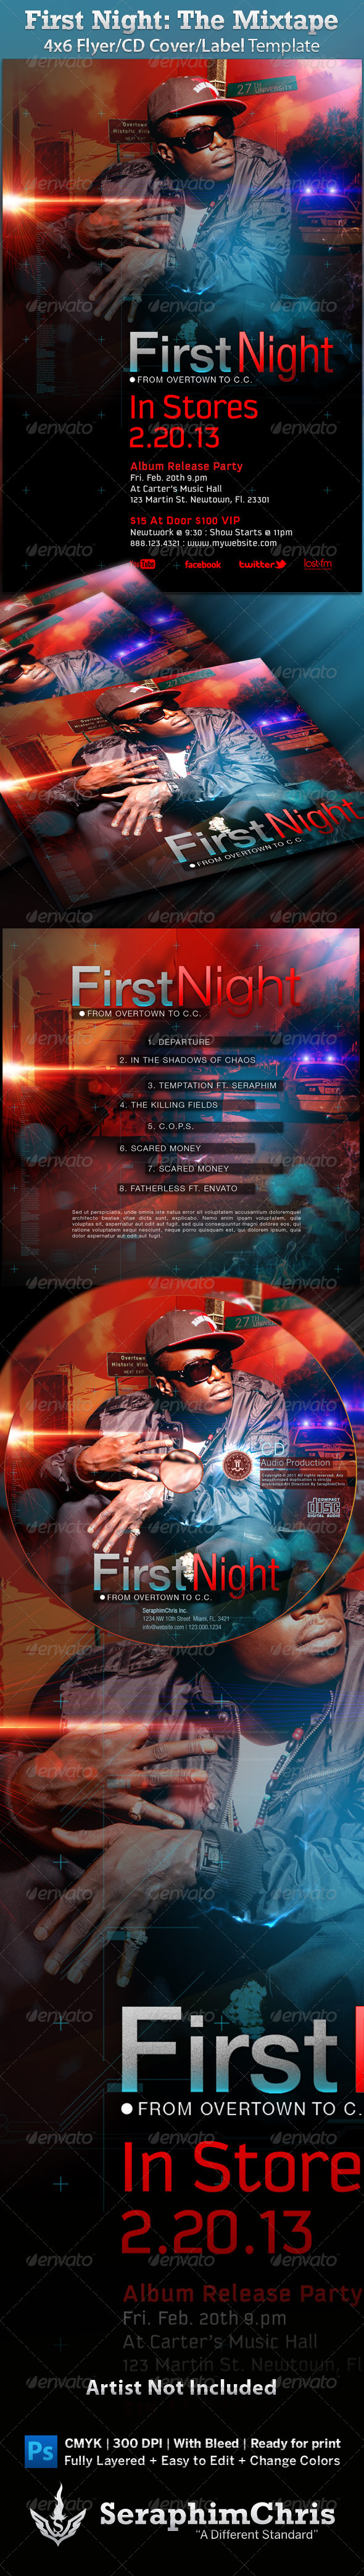 Mixtape/Album/Flyer: First Night - CD & DVD artwork Print Templates